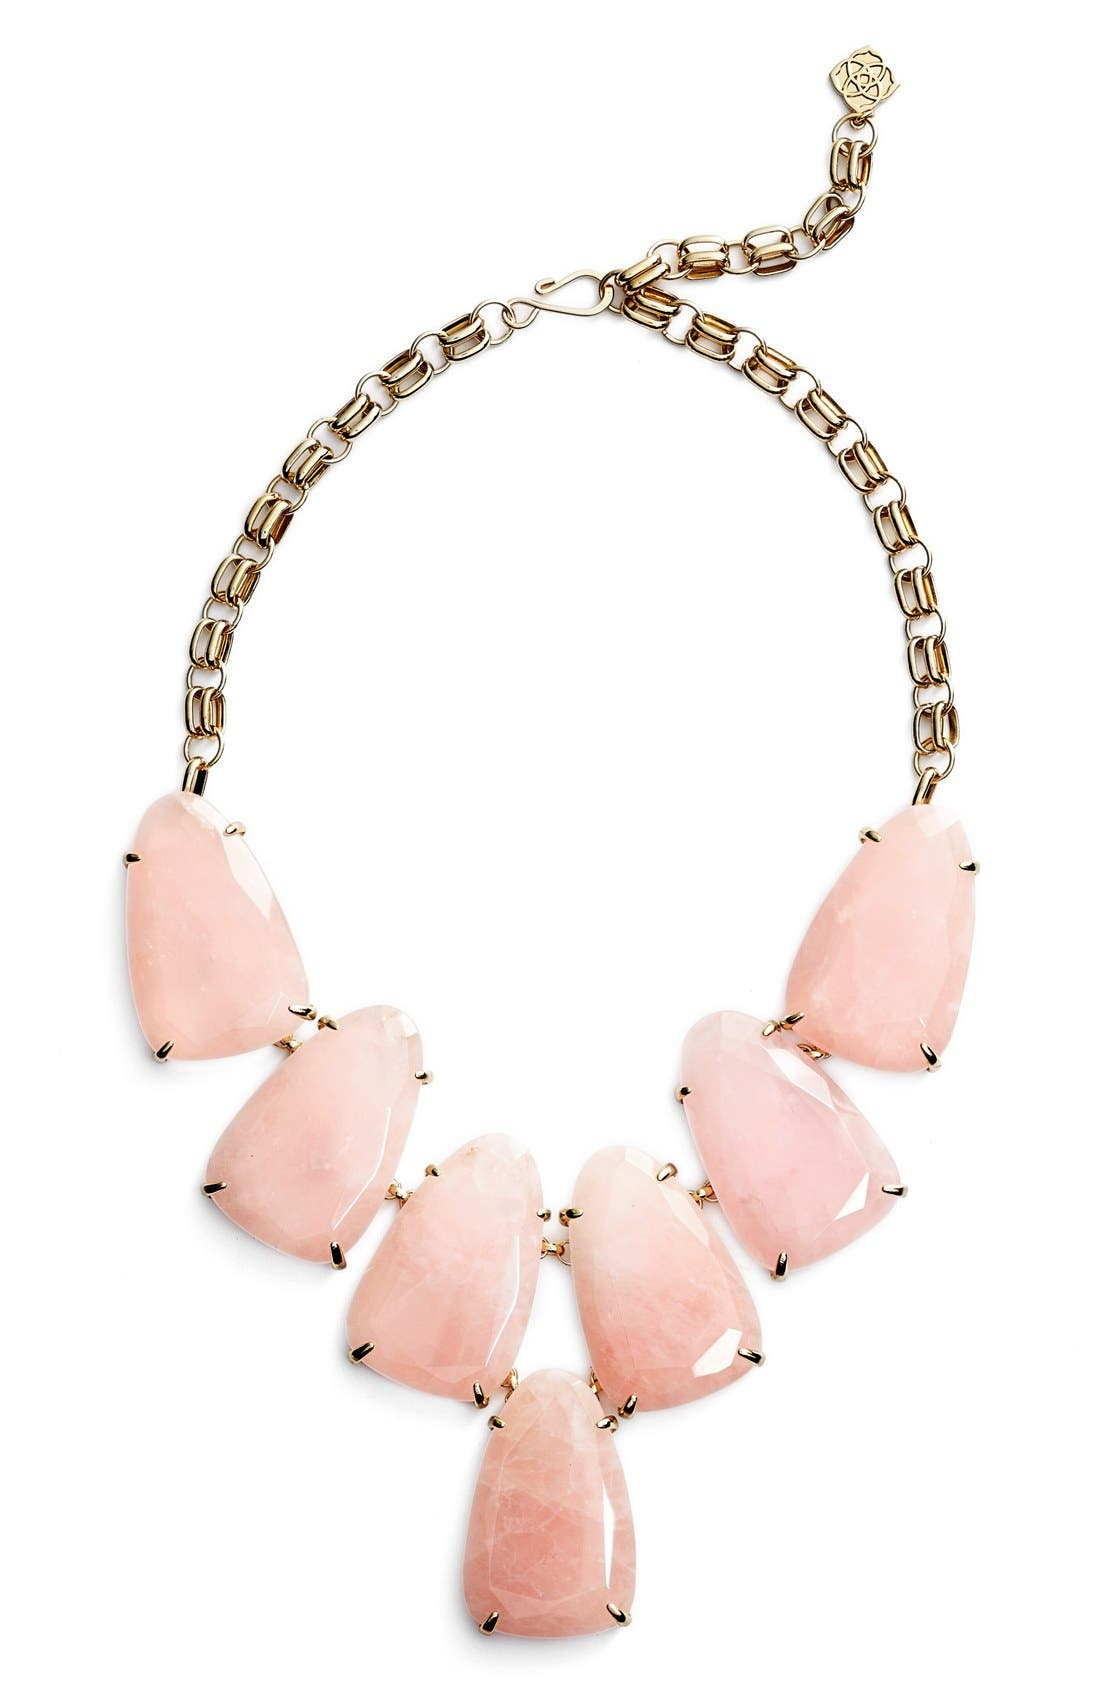 Harlow Necklace,                             Main thumbnail 1, color,                             Rose Quartz/ Gold